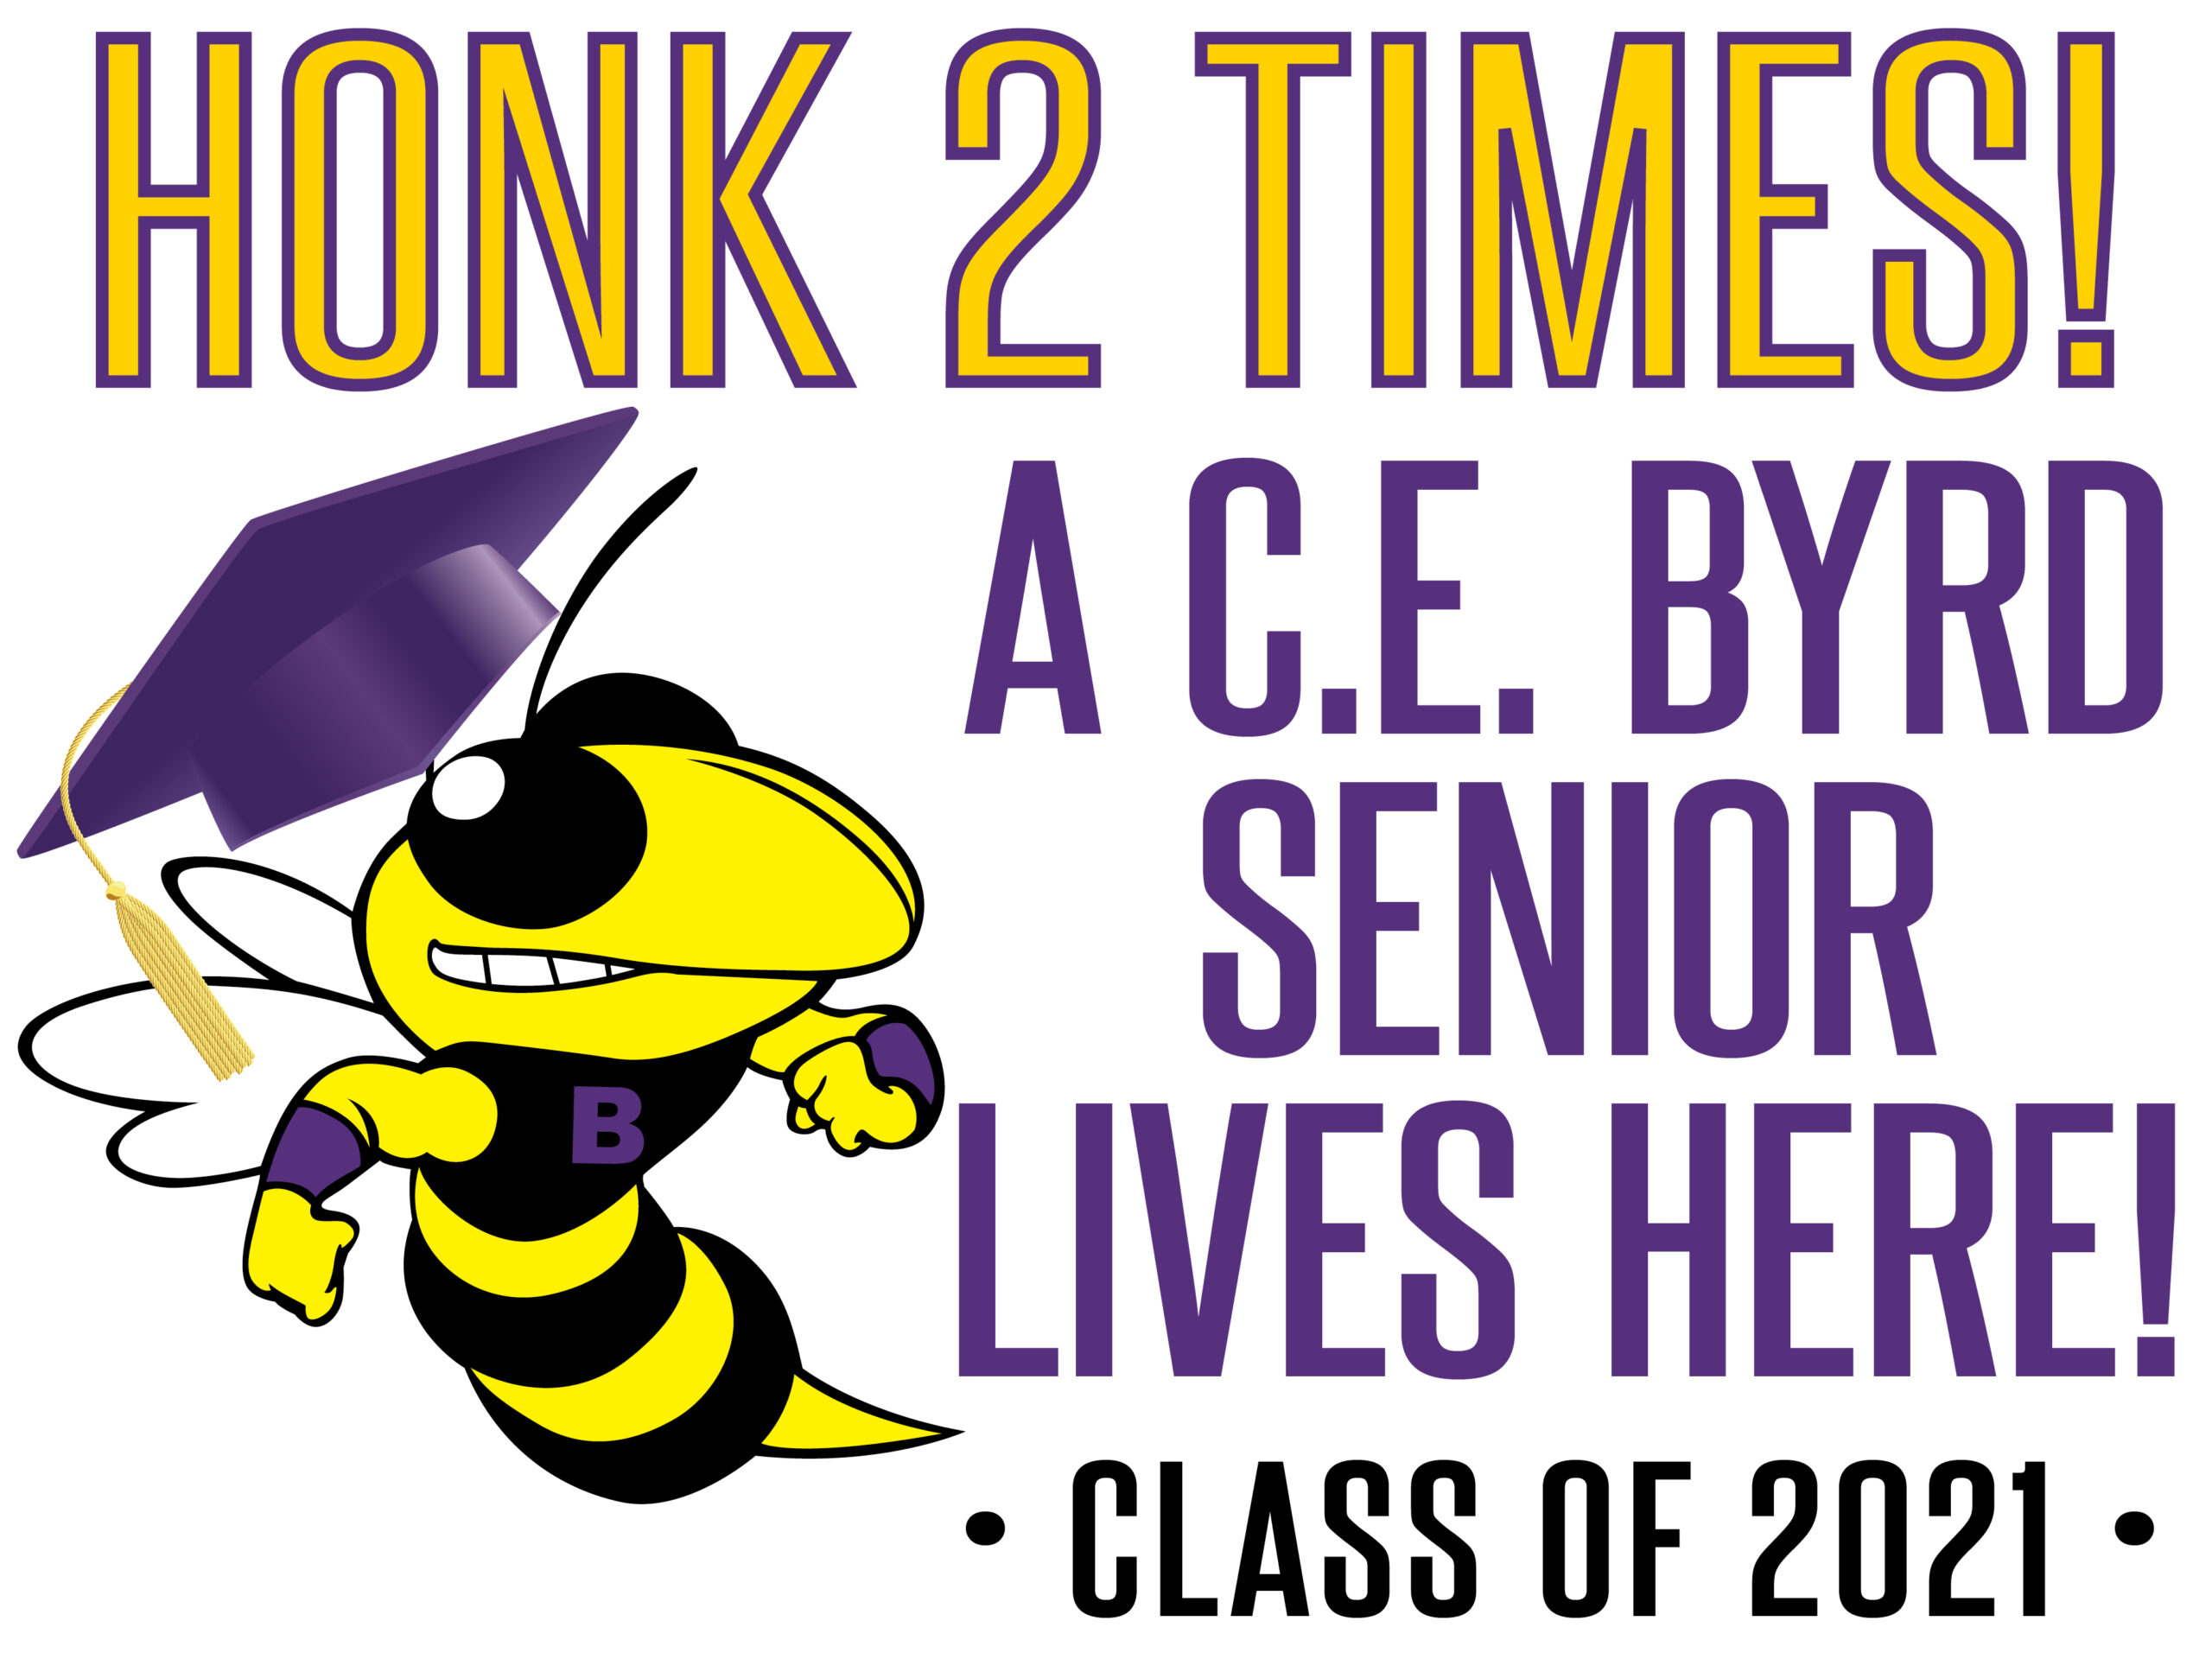 C.E. Byrd Senior Yard Signs c/o 2021